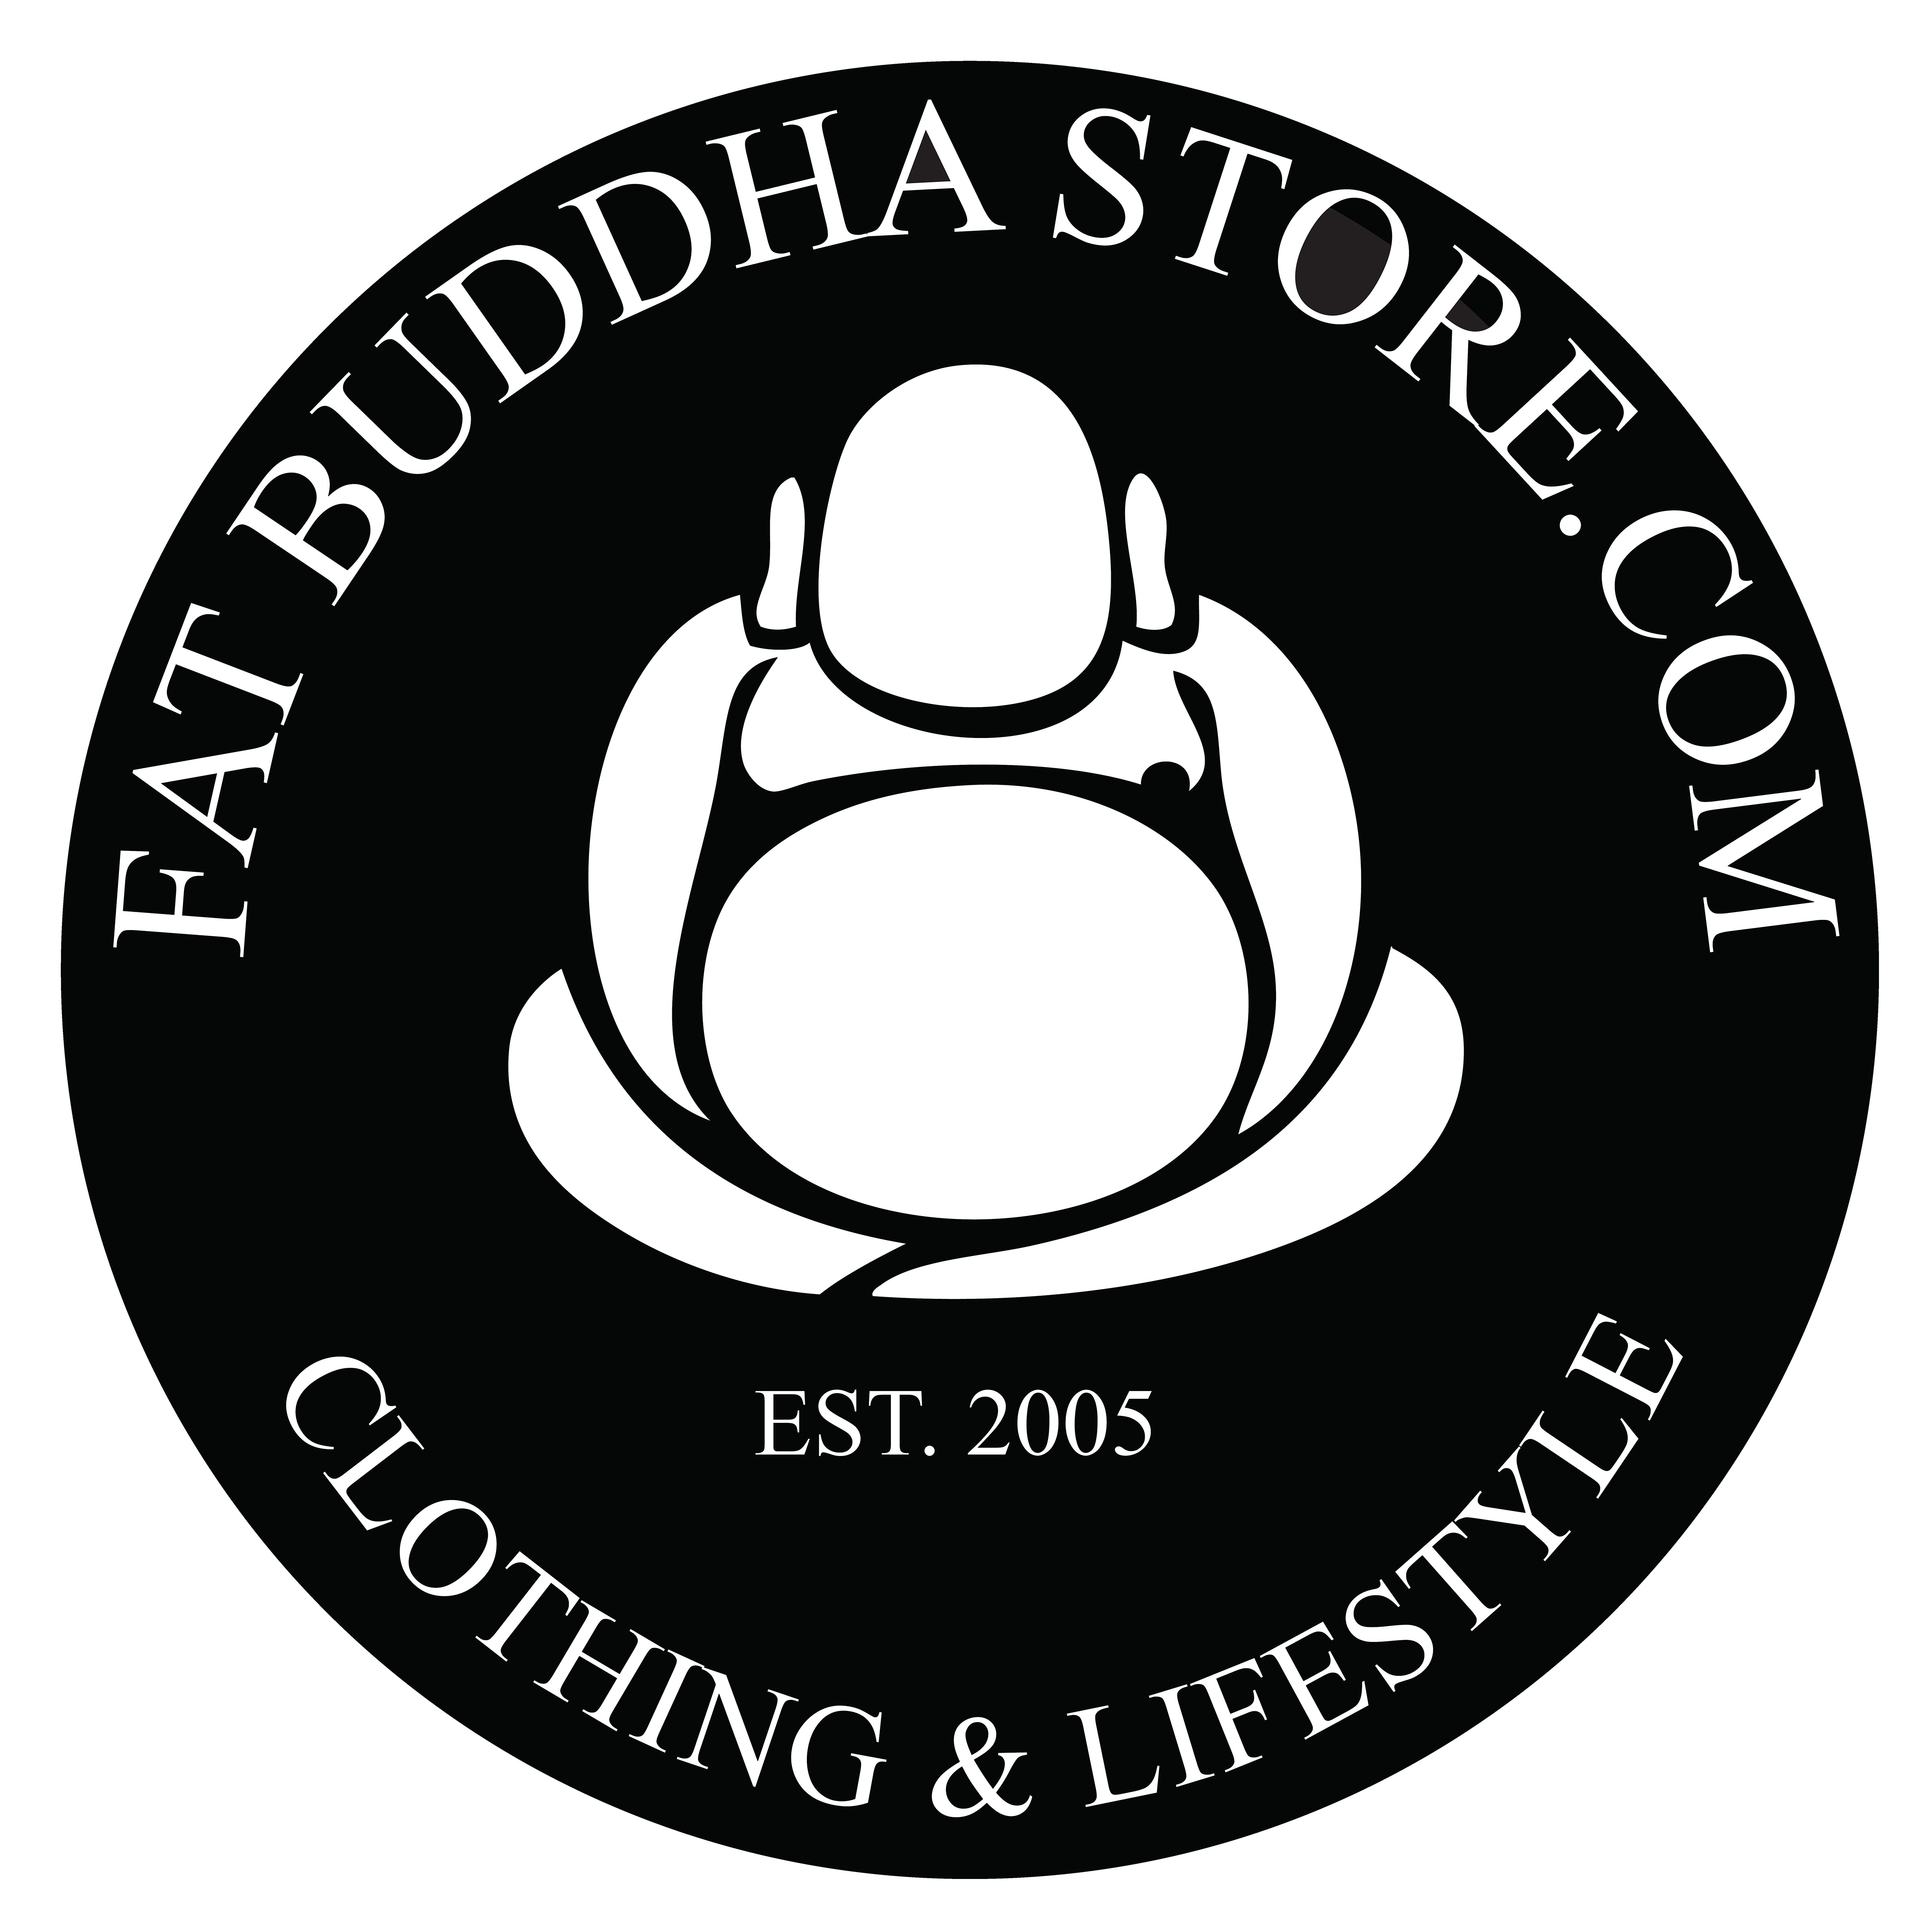 Read Fat Buddha Store Reviews